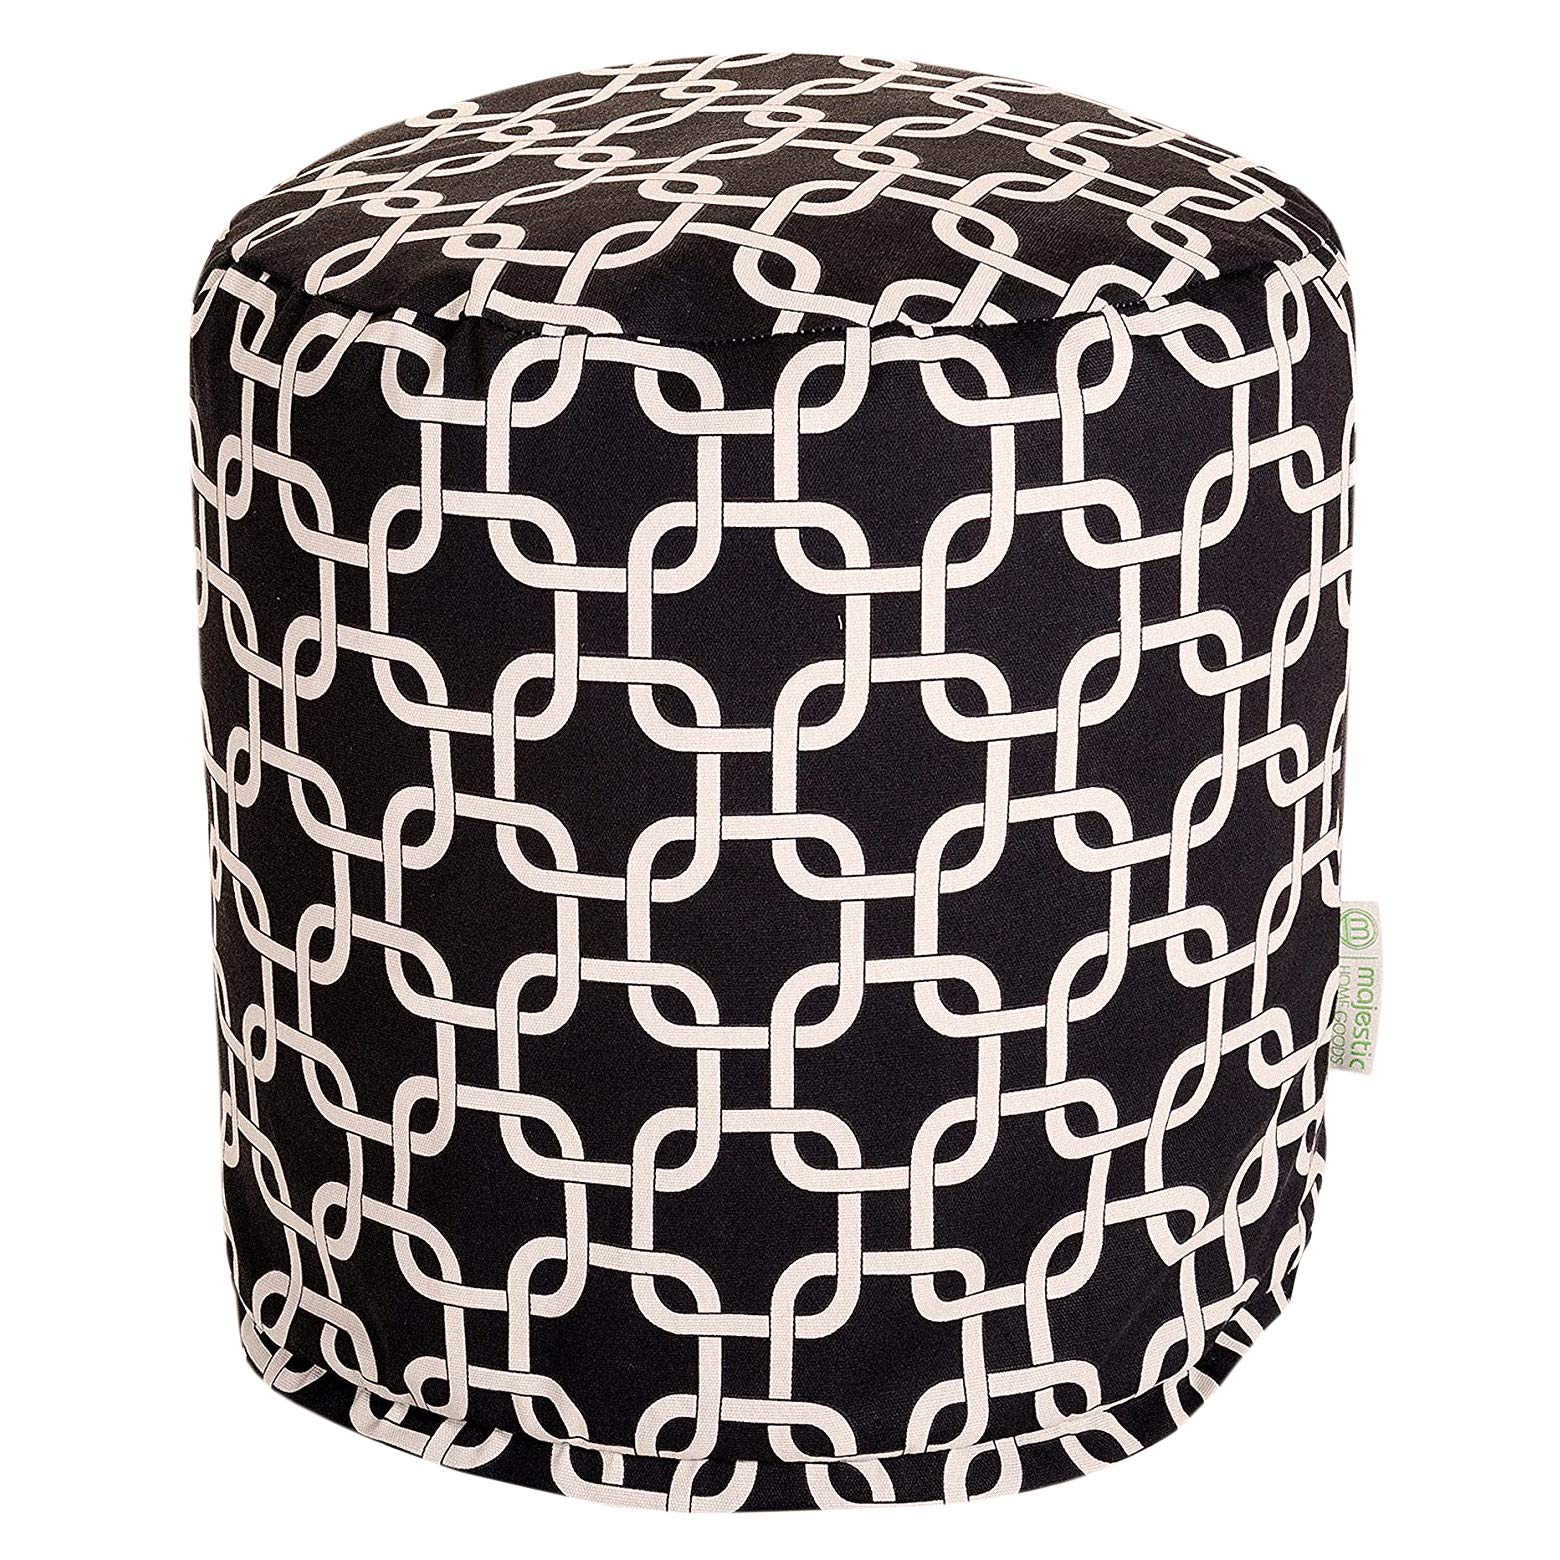 Majestic Home Goods Black Links Indoor/Outdoor Bean Bag Ottoman Pouf 16'' L x 16'' W x 17'' H by Majestic Home Goods (Image #1)